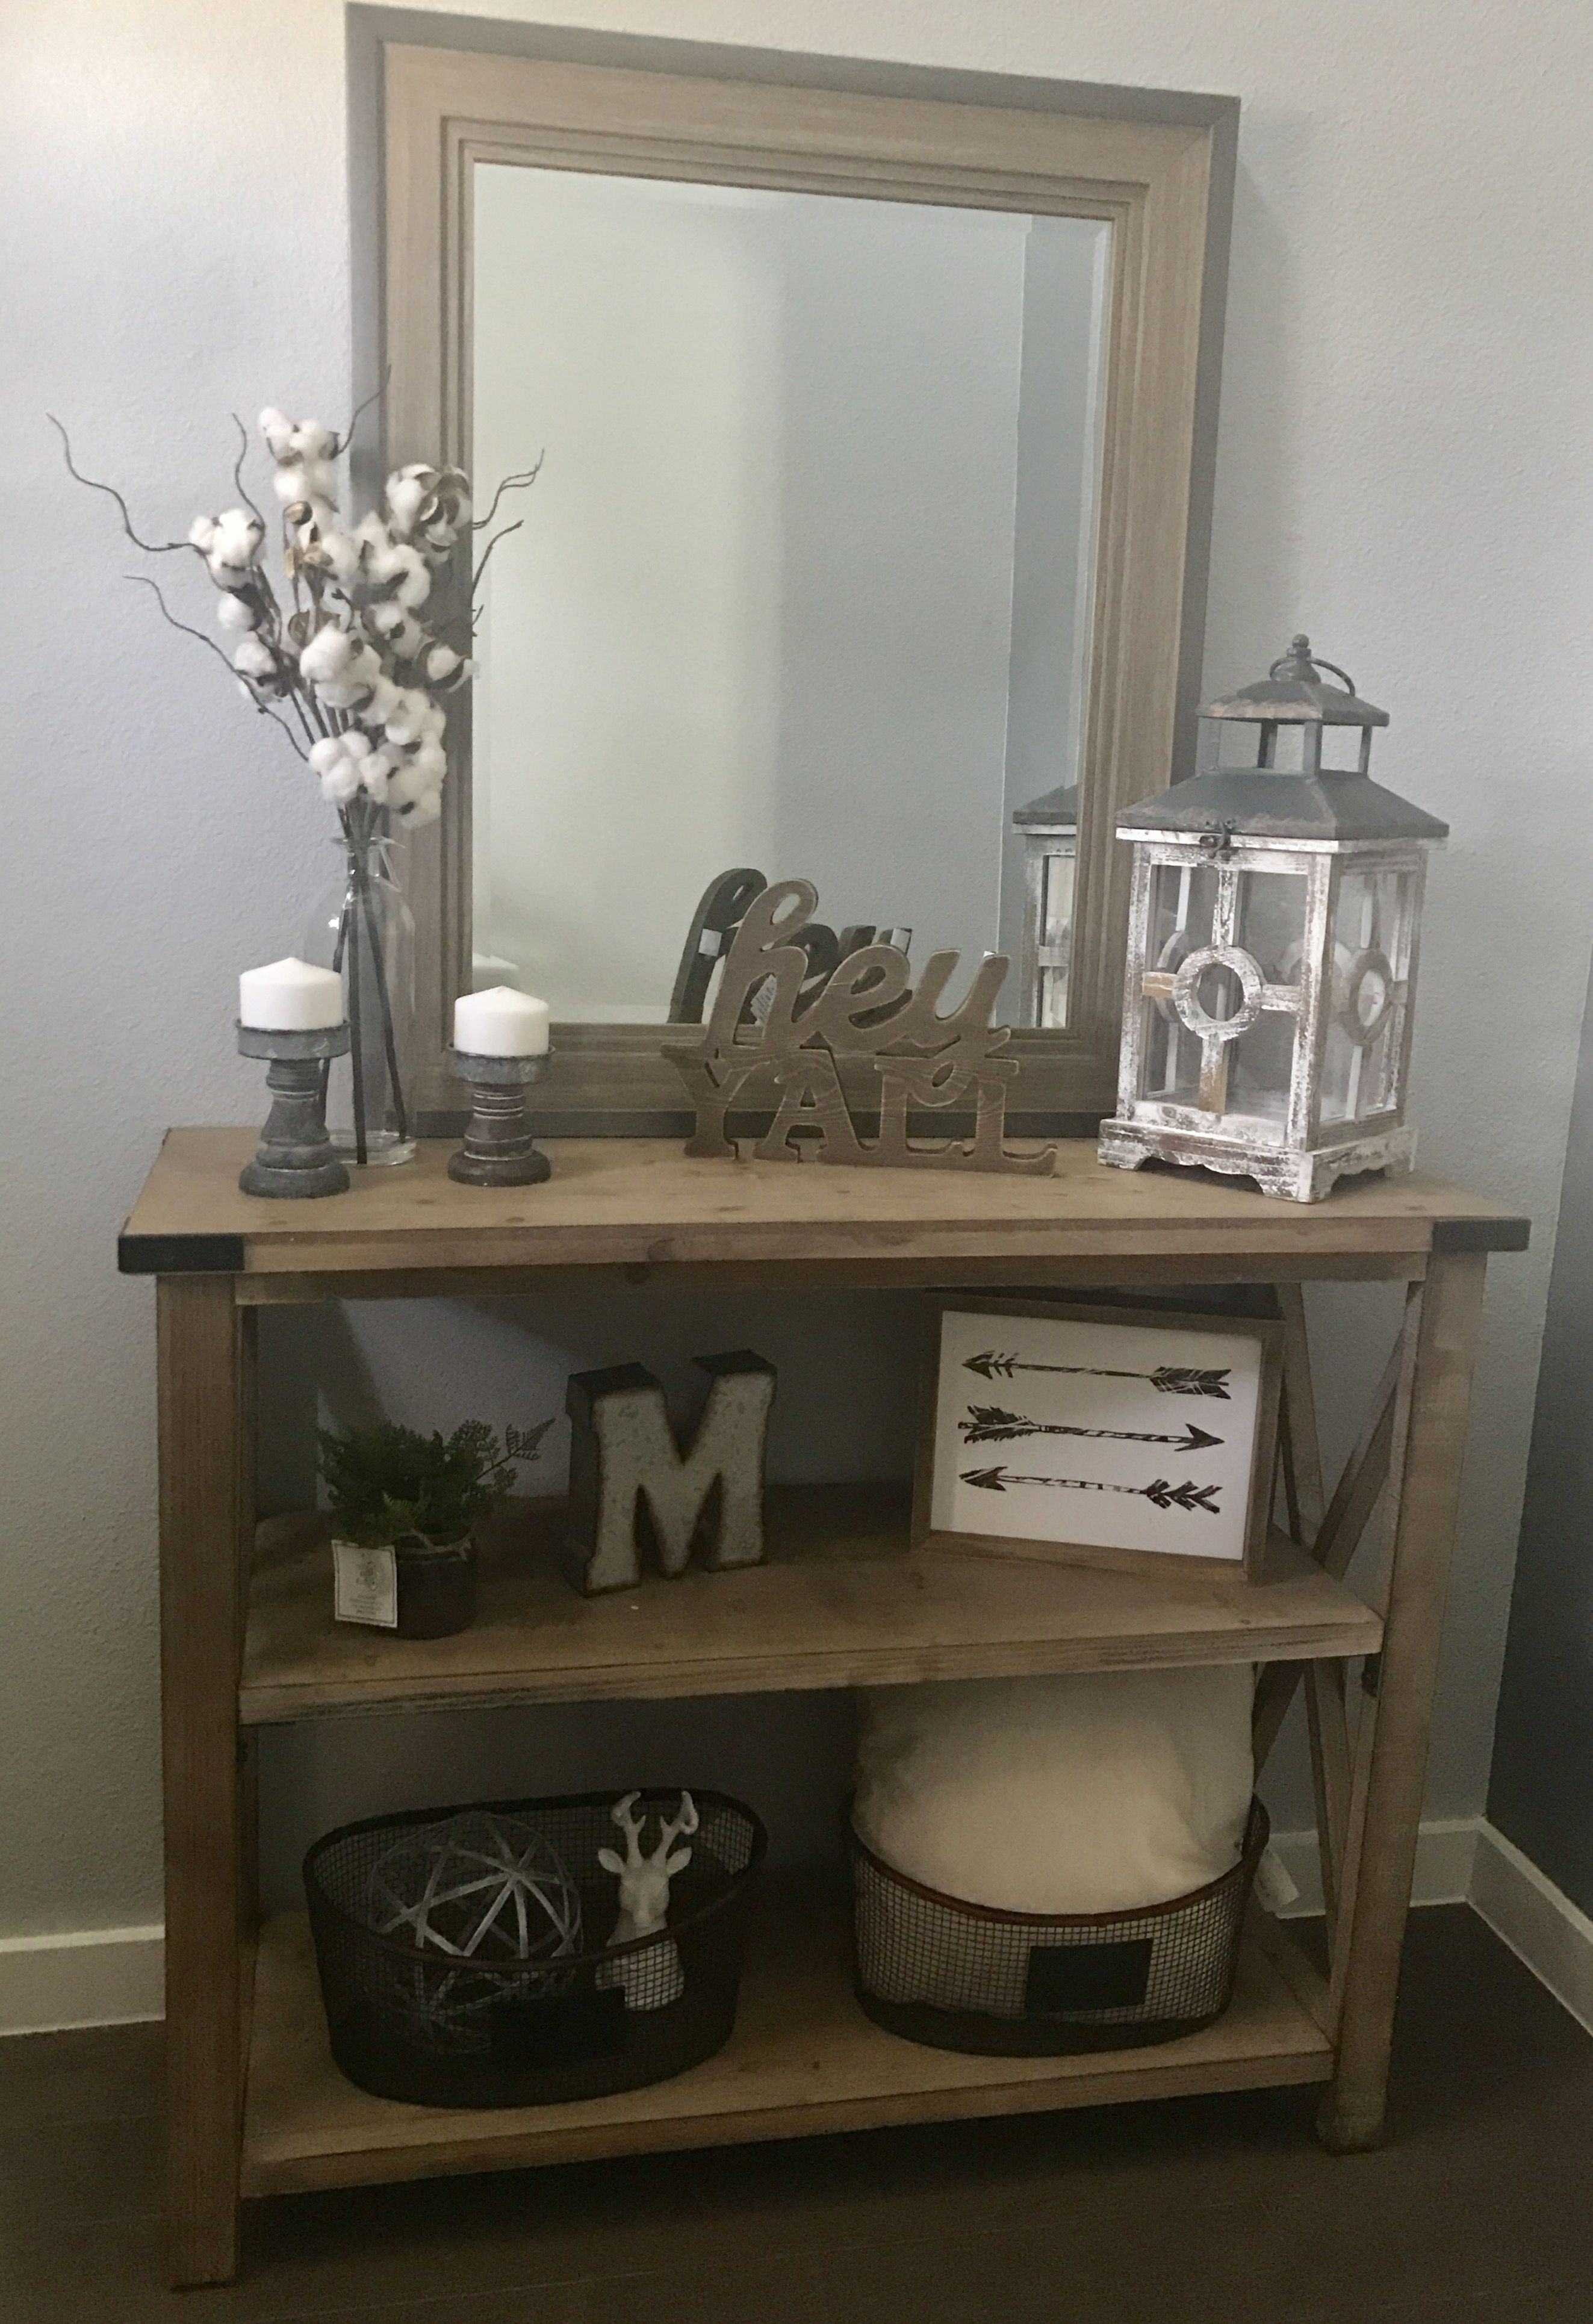 new modern farmhouse entry way console table decor mcmillen home round accent for foyer high top outdoor set unfinished furniture legs kitchen tall nightstands clearance brass